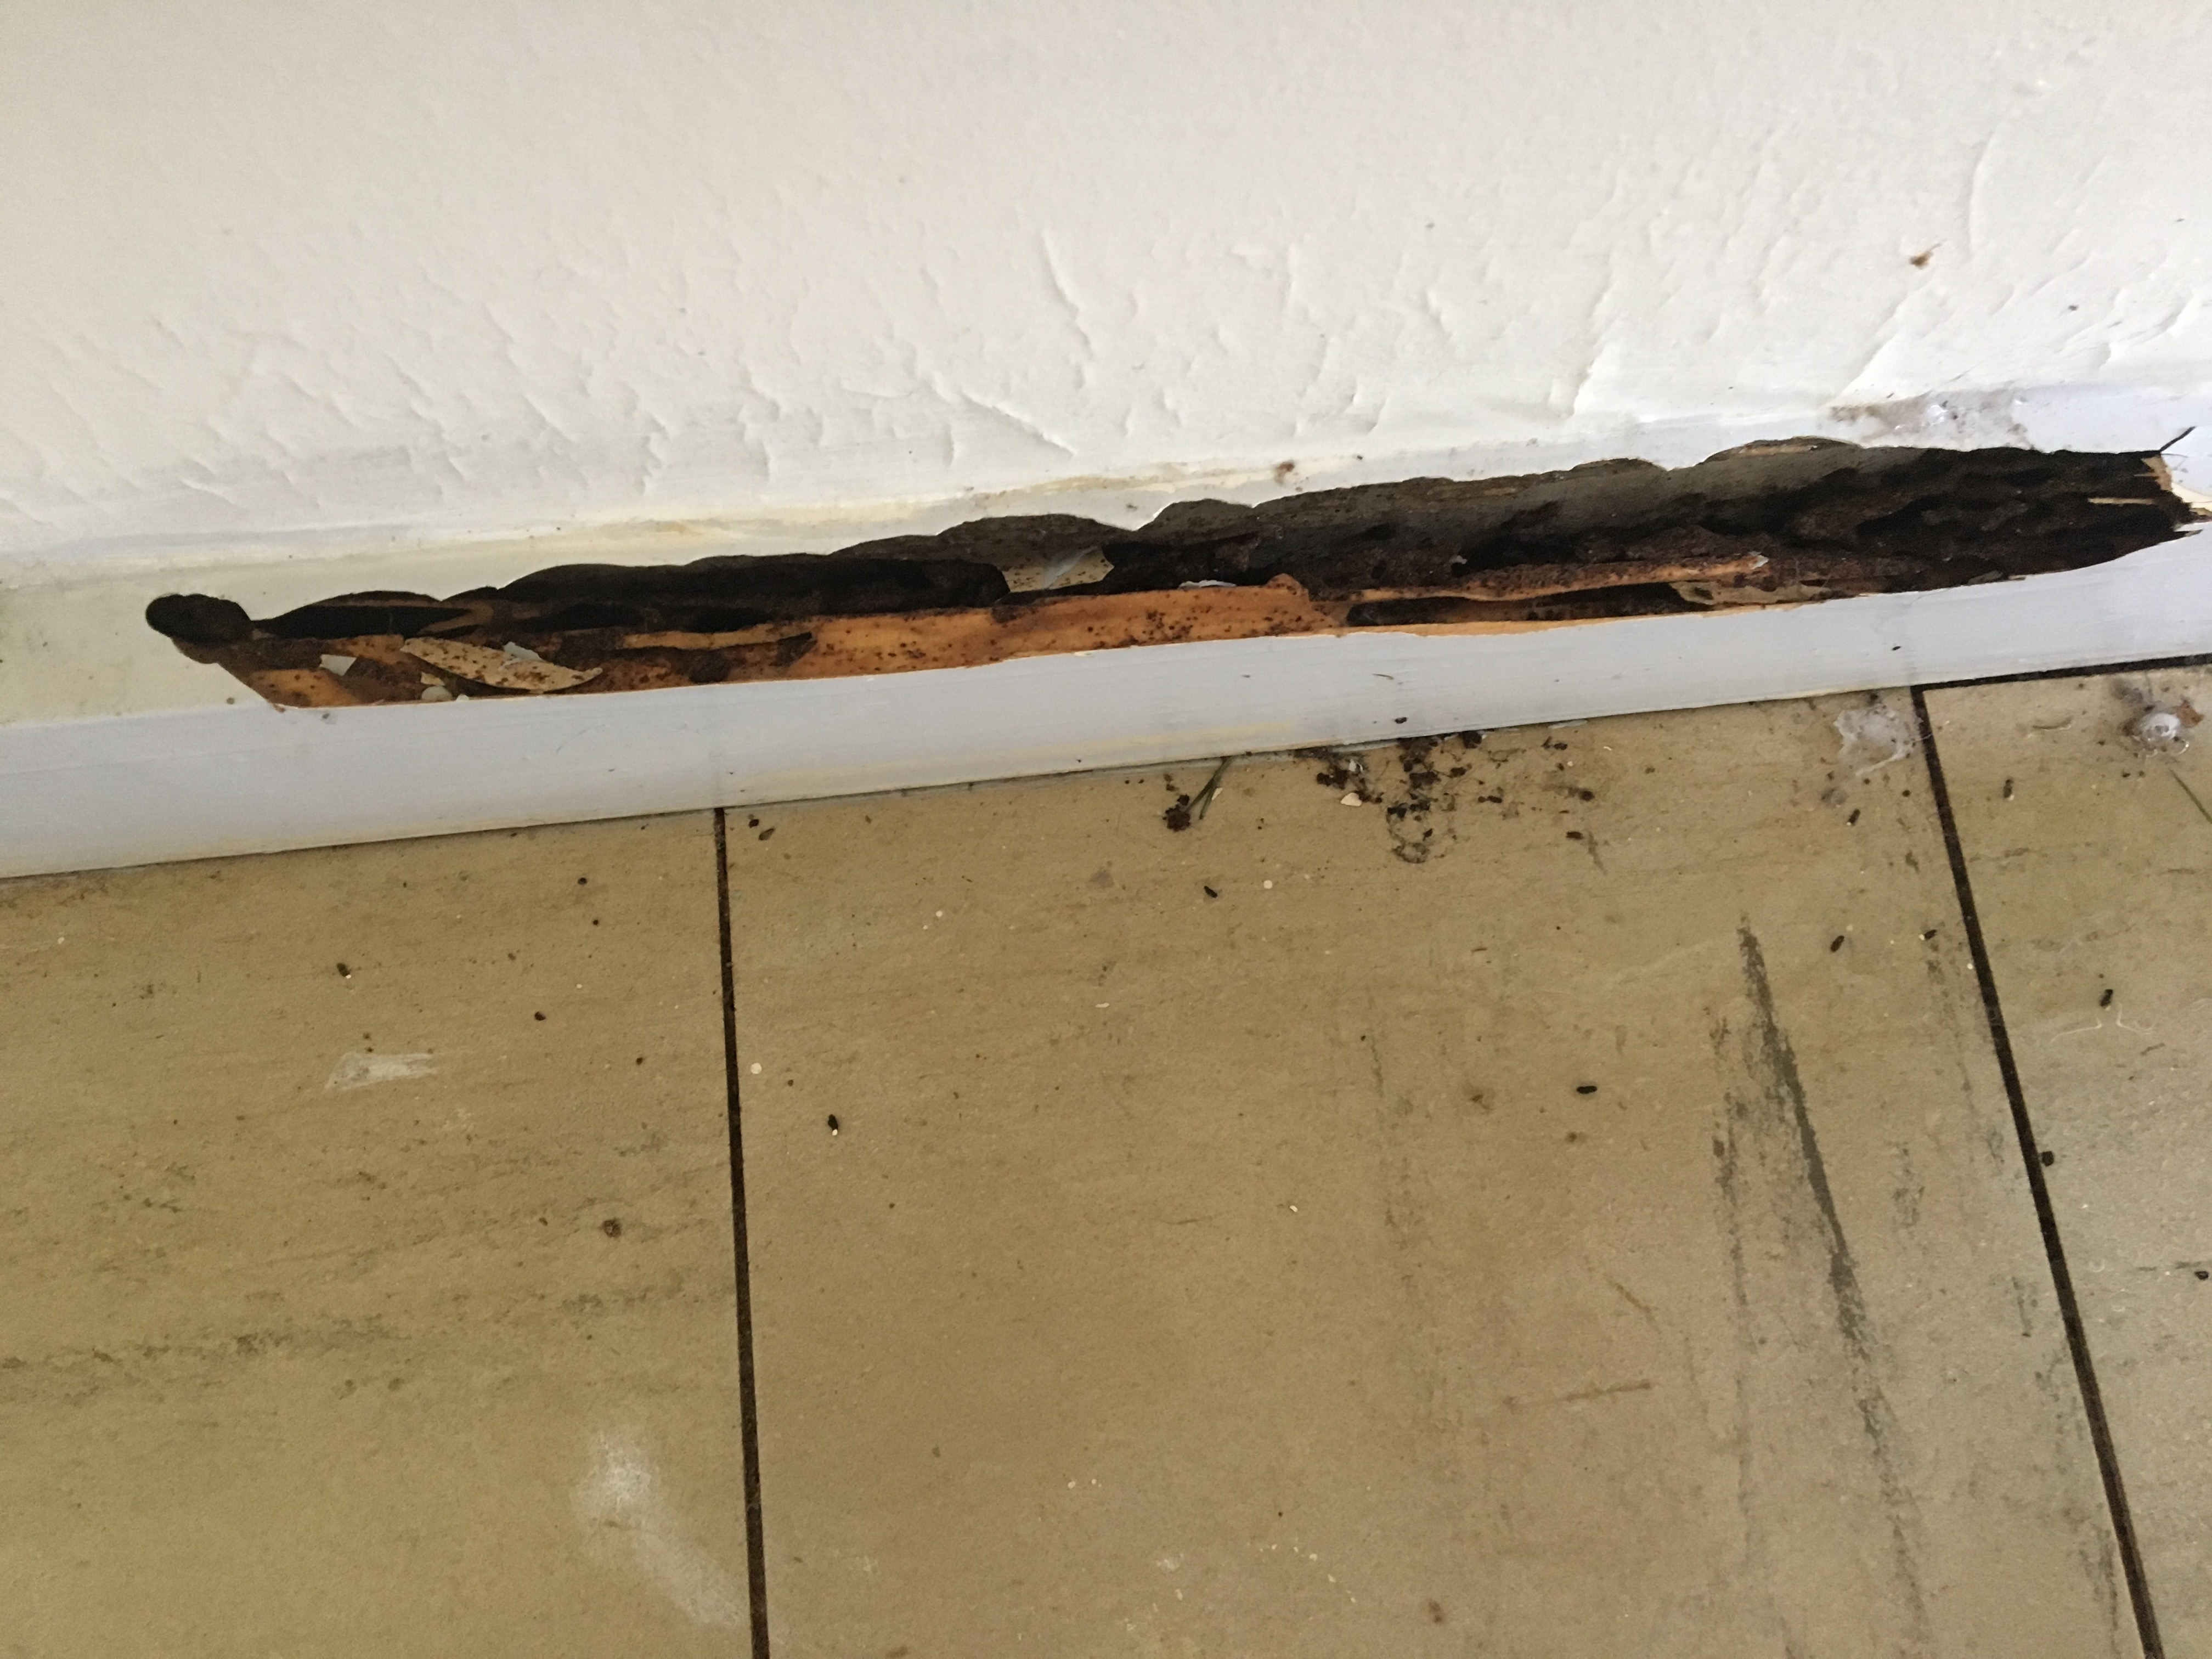 Skirting board damage in Townsville